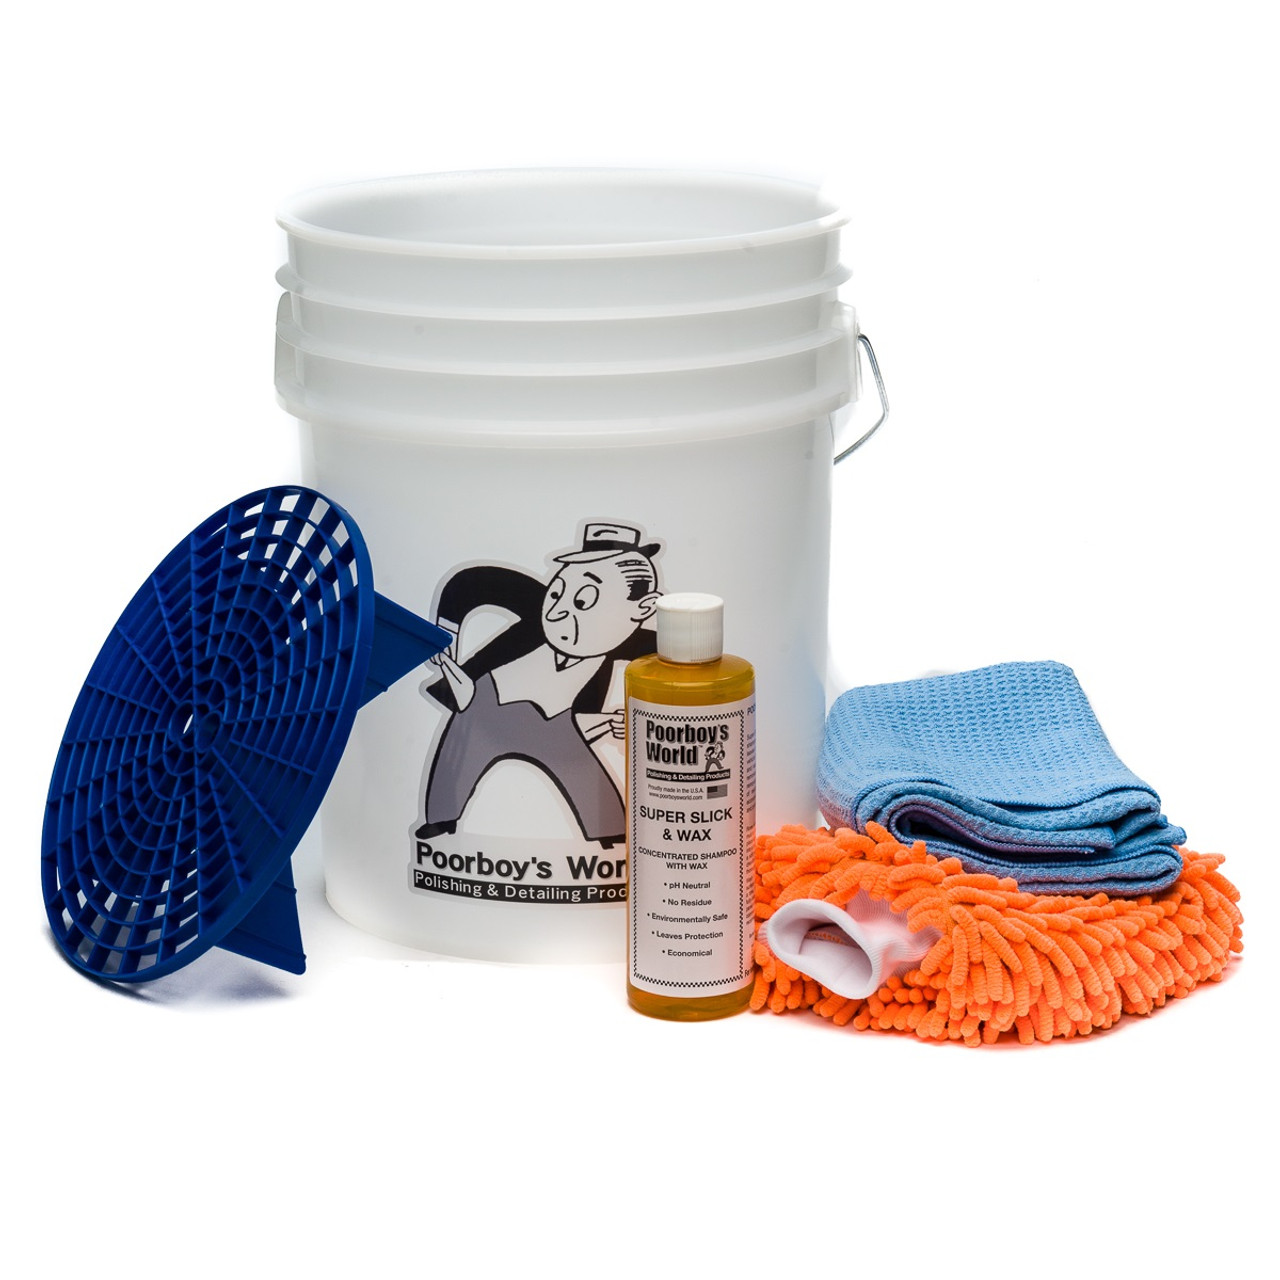 Poorboy's World Car Wash Bucket Special Starter Kit - White Bucket